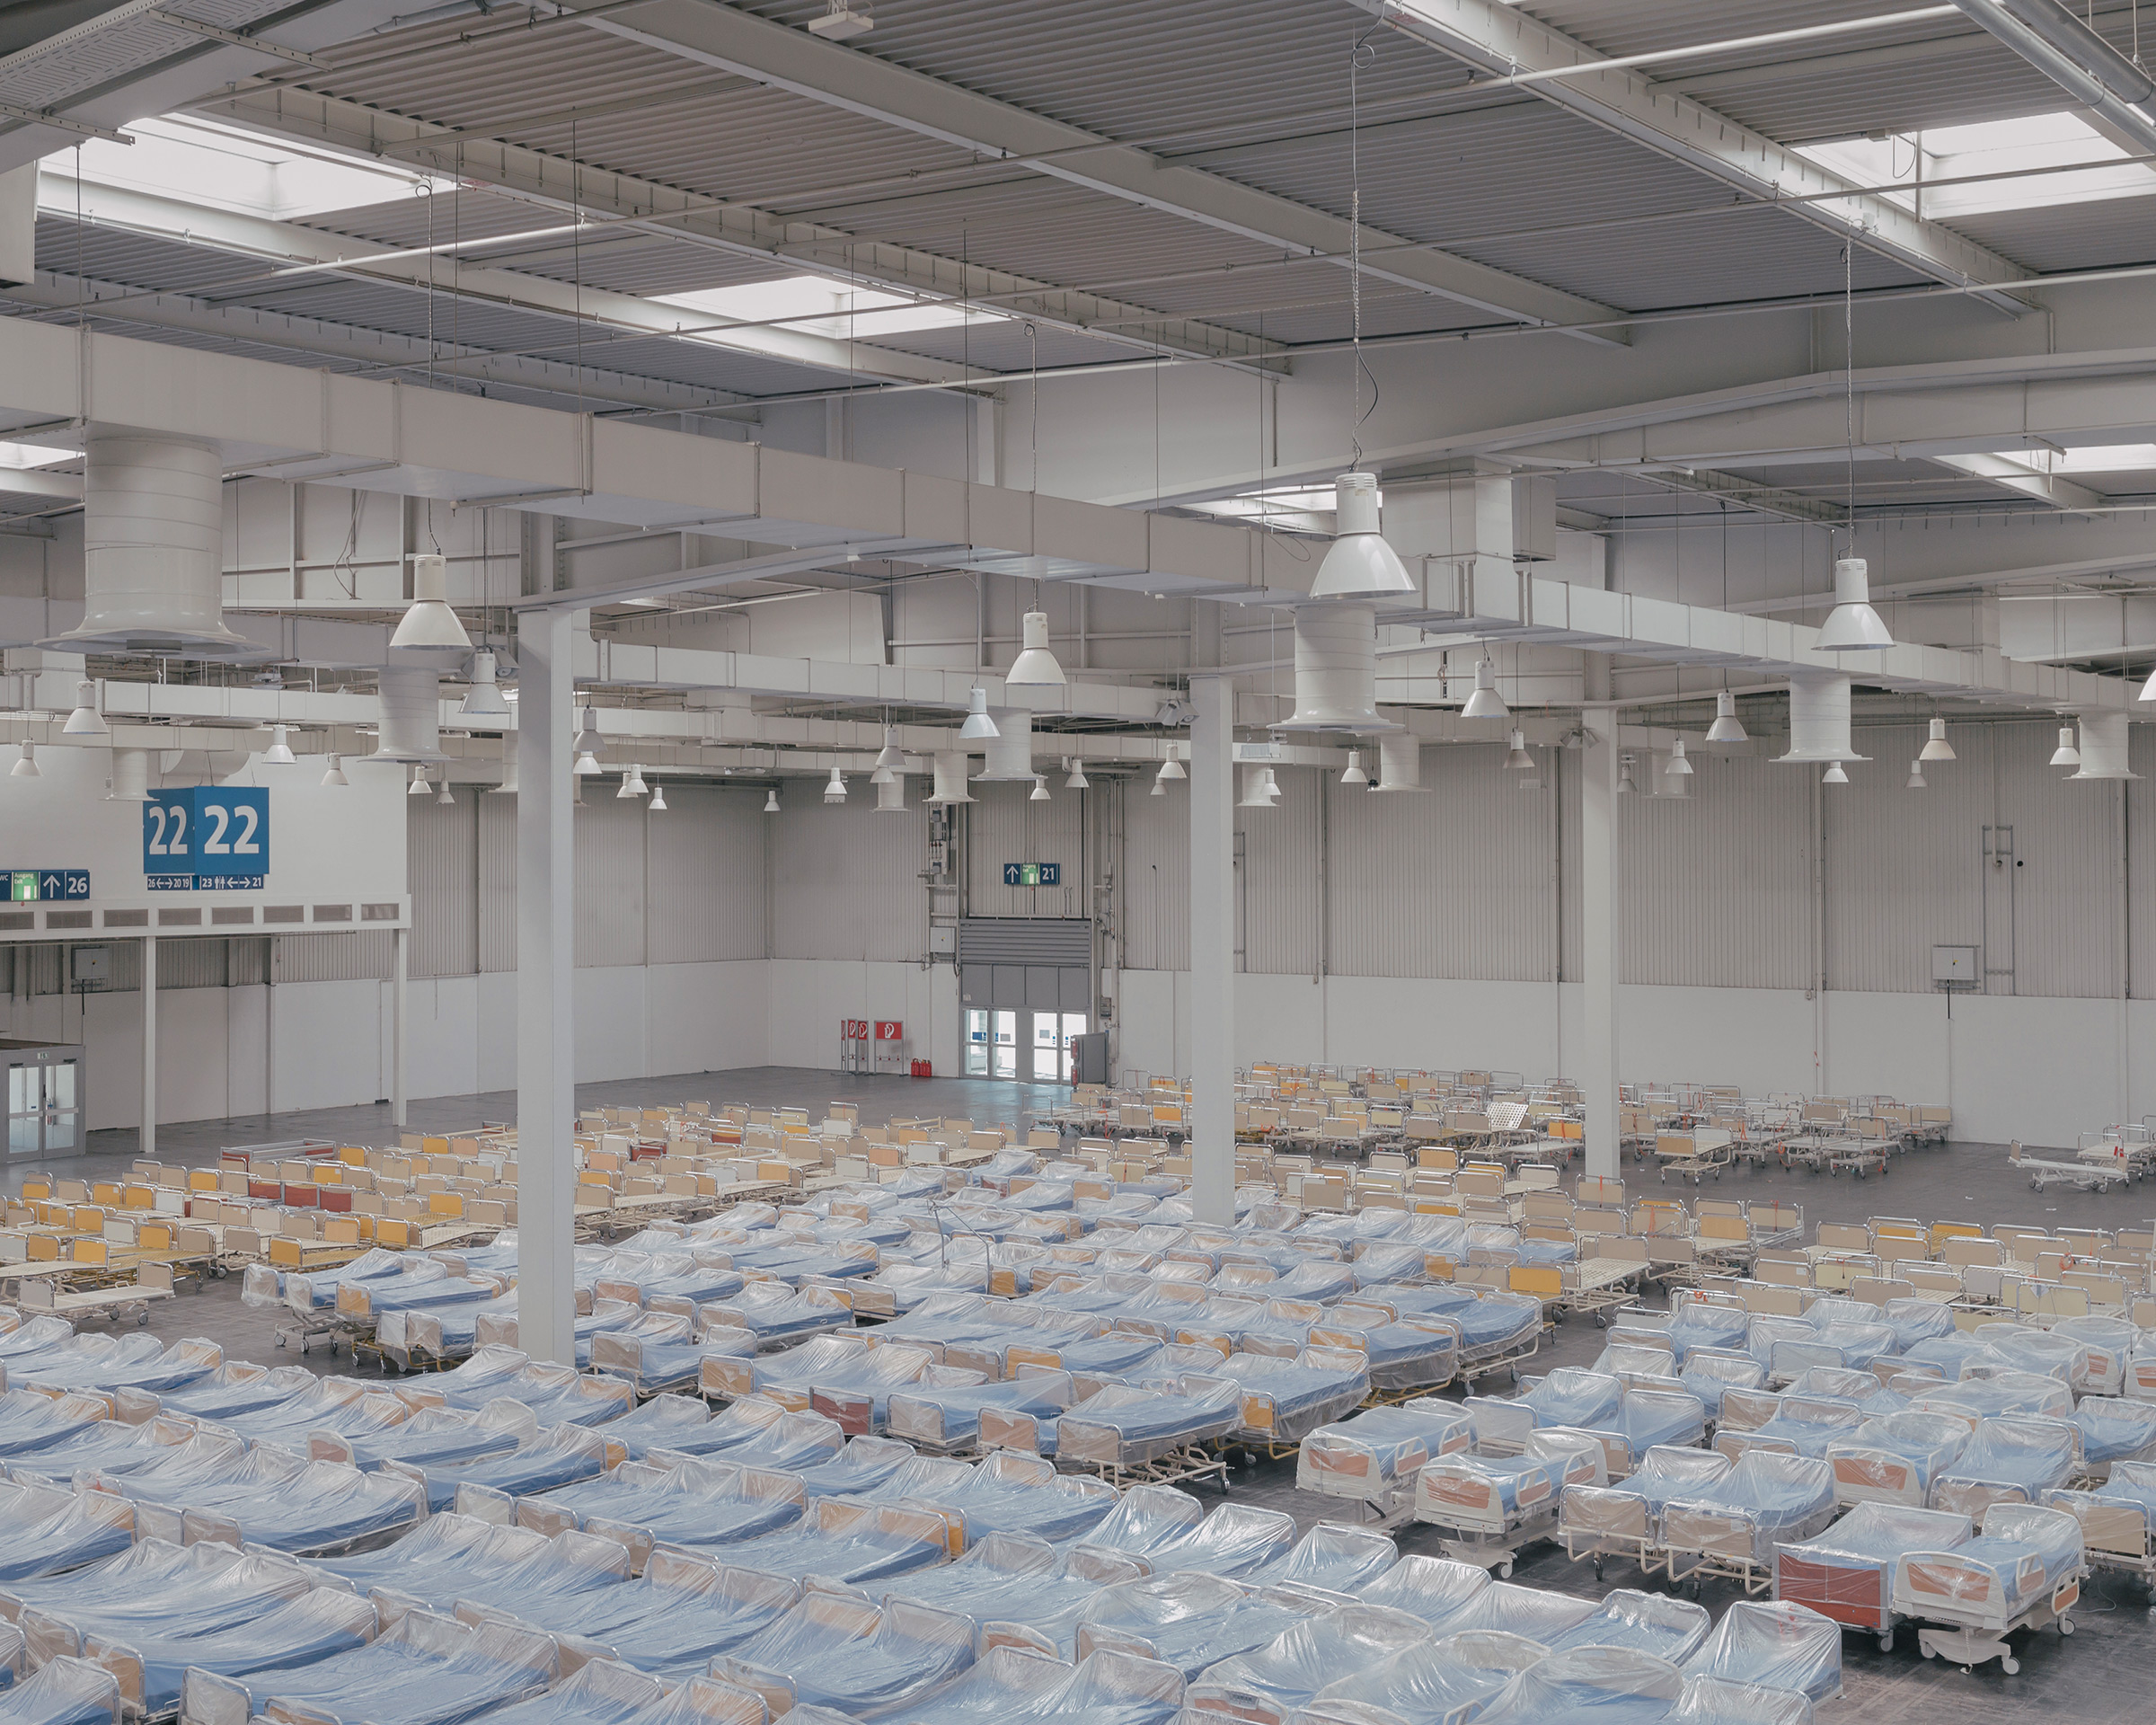 Hospital beds are set up on April 4 at a new hospital for treating coronavirus in an exhibition hall at the Hannover Messe trade fair in Hannover. Five hundred beds will be available across two halls.